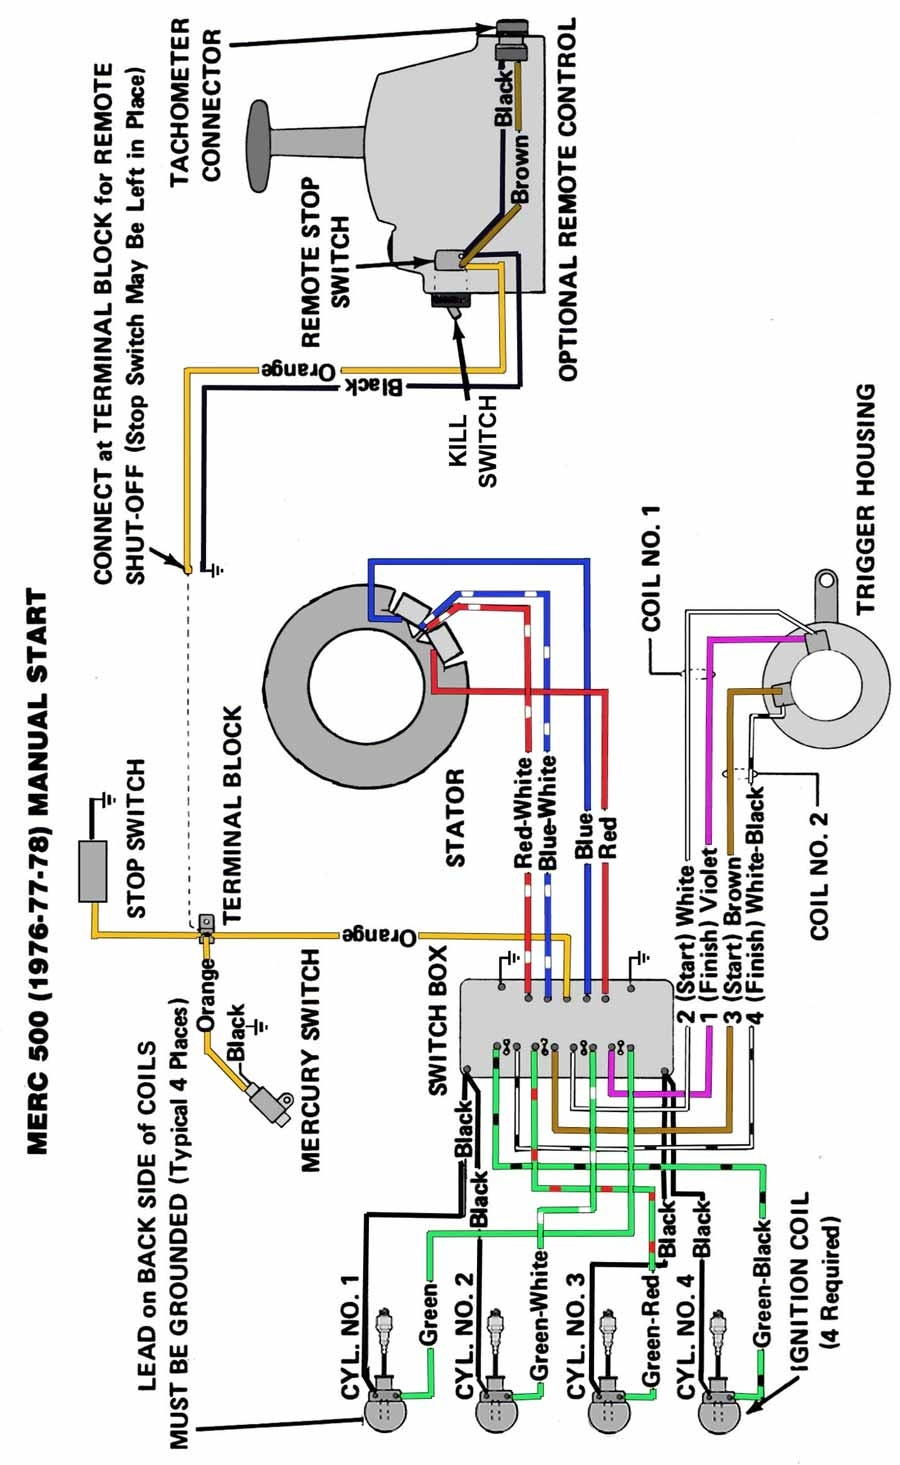 mercury outboard wiring diagrams mastertech marin intended for 76 evinrude wiring diagram?resize\\\\\\\\\\\\\\\=665%2C1082\\\\\\\\\\\\\\\&ssl\\\\\\\\\\\\\\\=1 mercury outboard ignition switch diagram color coded wiring Boat Ignition Switch Wiring Diagram at mifinder.co